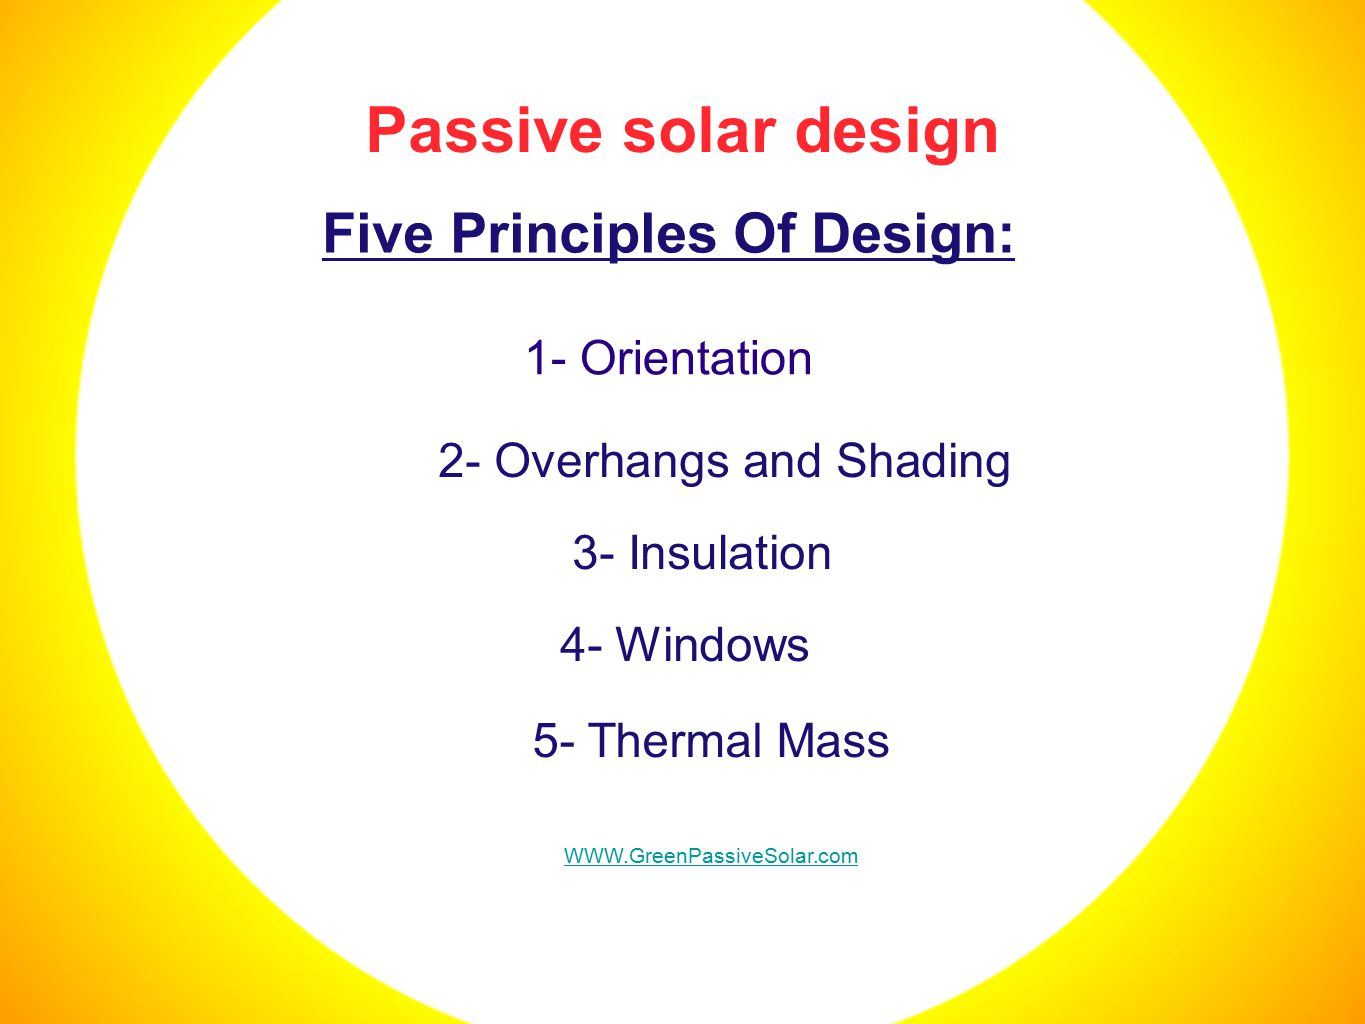 Passive solar design 2- Overhangs and Shading Five Principles Of Design: 1- Orientation 4- Windows 3- Insulation 5- Thermal Mass